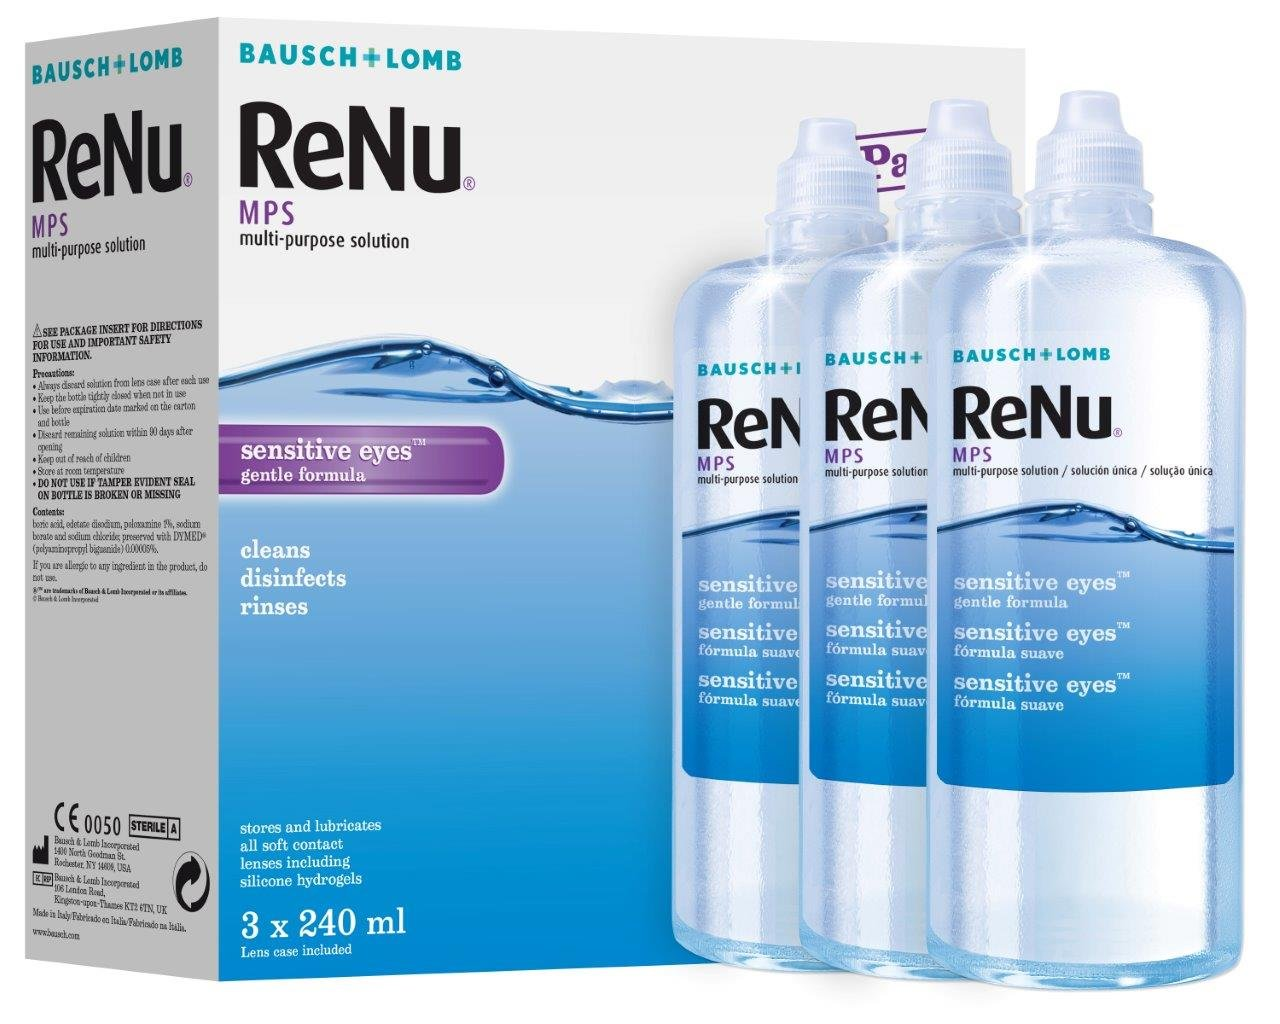 a80ad00a2cd Bausch Lomb ReNu MPS Multi- Purpose Solution for Sensitive Eyes 3x240ml (3  months supply)  Amazon.co.uk  Health   Personal Care